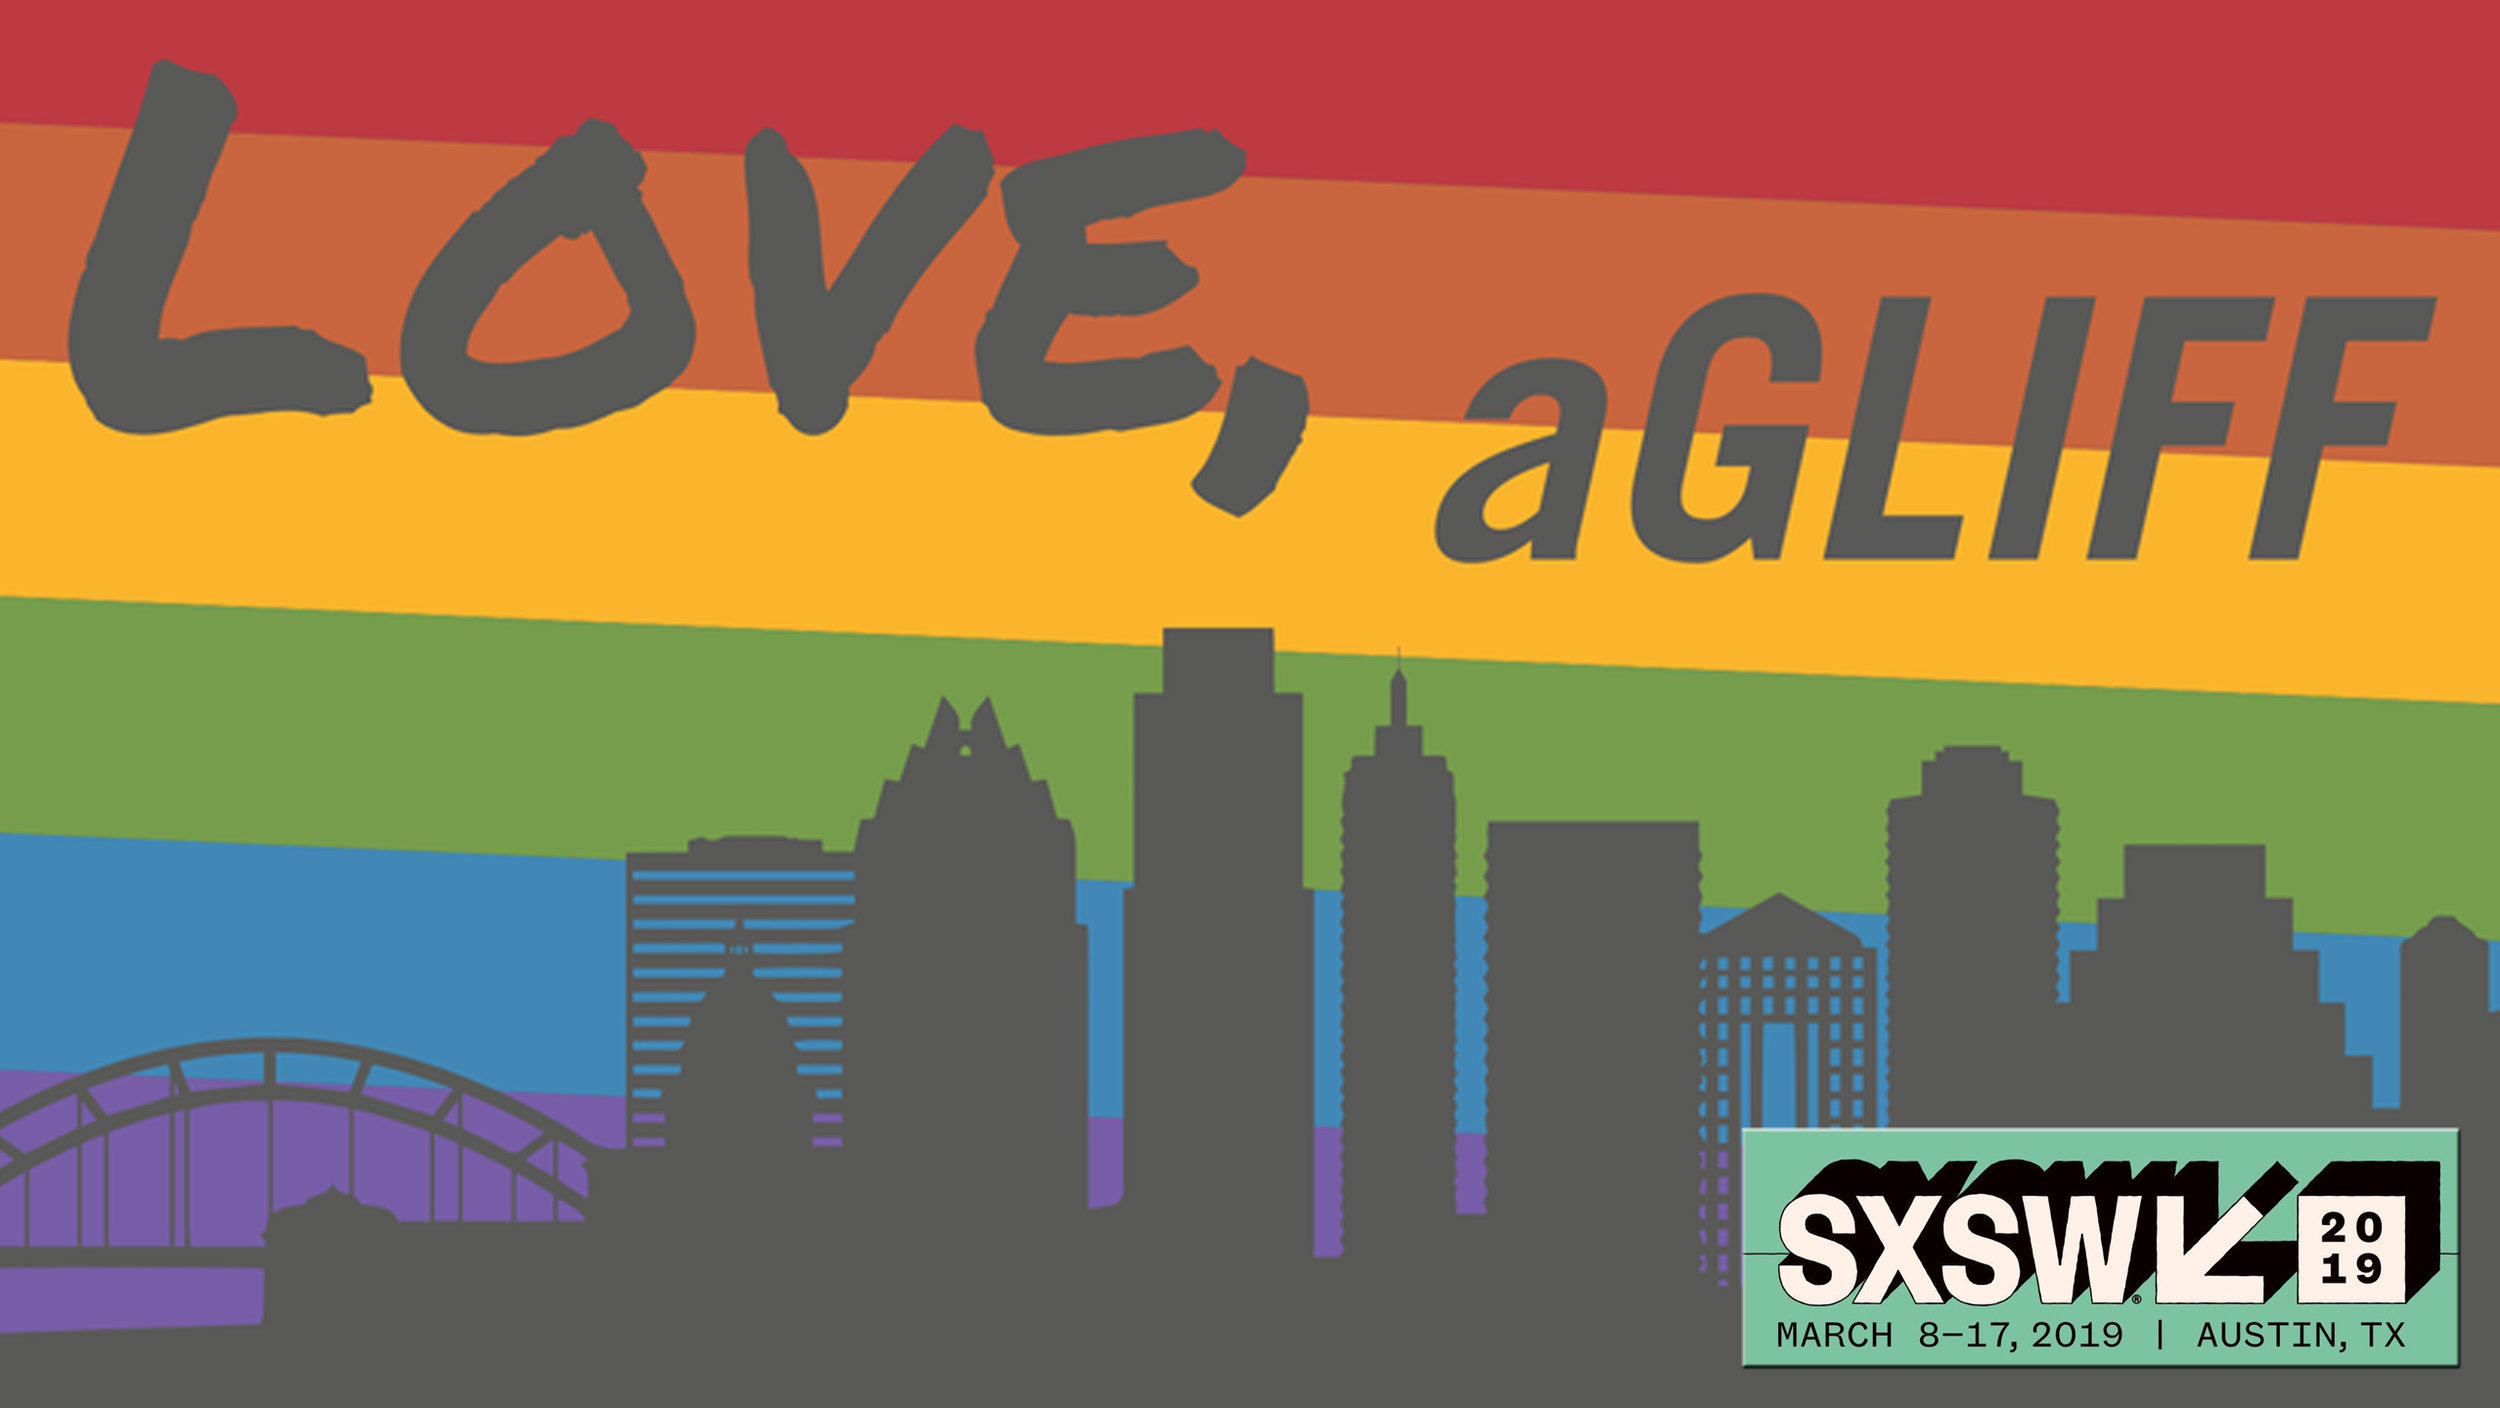 M   BP e314 -    aGLIFF Brunch Filmmaker Interviews at SXSW 2019    (3/29/19)    Once again, the gracious organizers of #aGLIFF (All Genders, Lifestyles, and Identities Film Festival) have invited us to their Filmmaker's Brunch during #SXSW 2019 at The Iron Bear in Austin TX for an opportunity we could never pass up...to meet and interview the incredibly talented filmmakers involved with several LGBTQ+ films screening at #SXSW2019. Have a listen to what's behind these artists and their films!